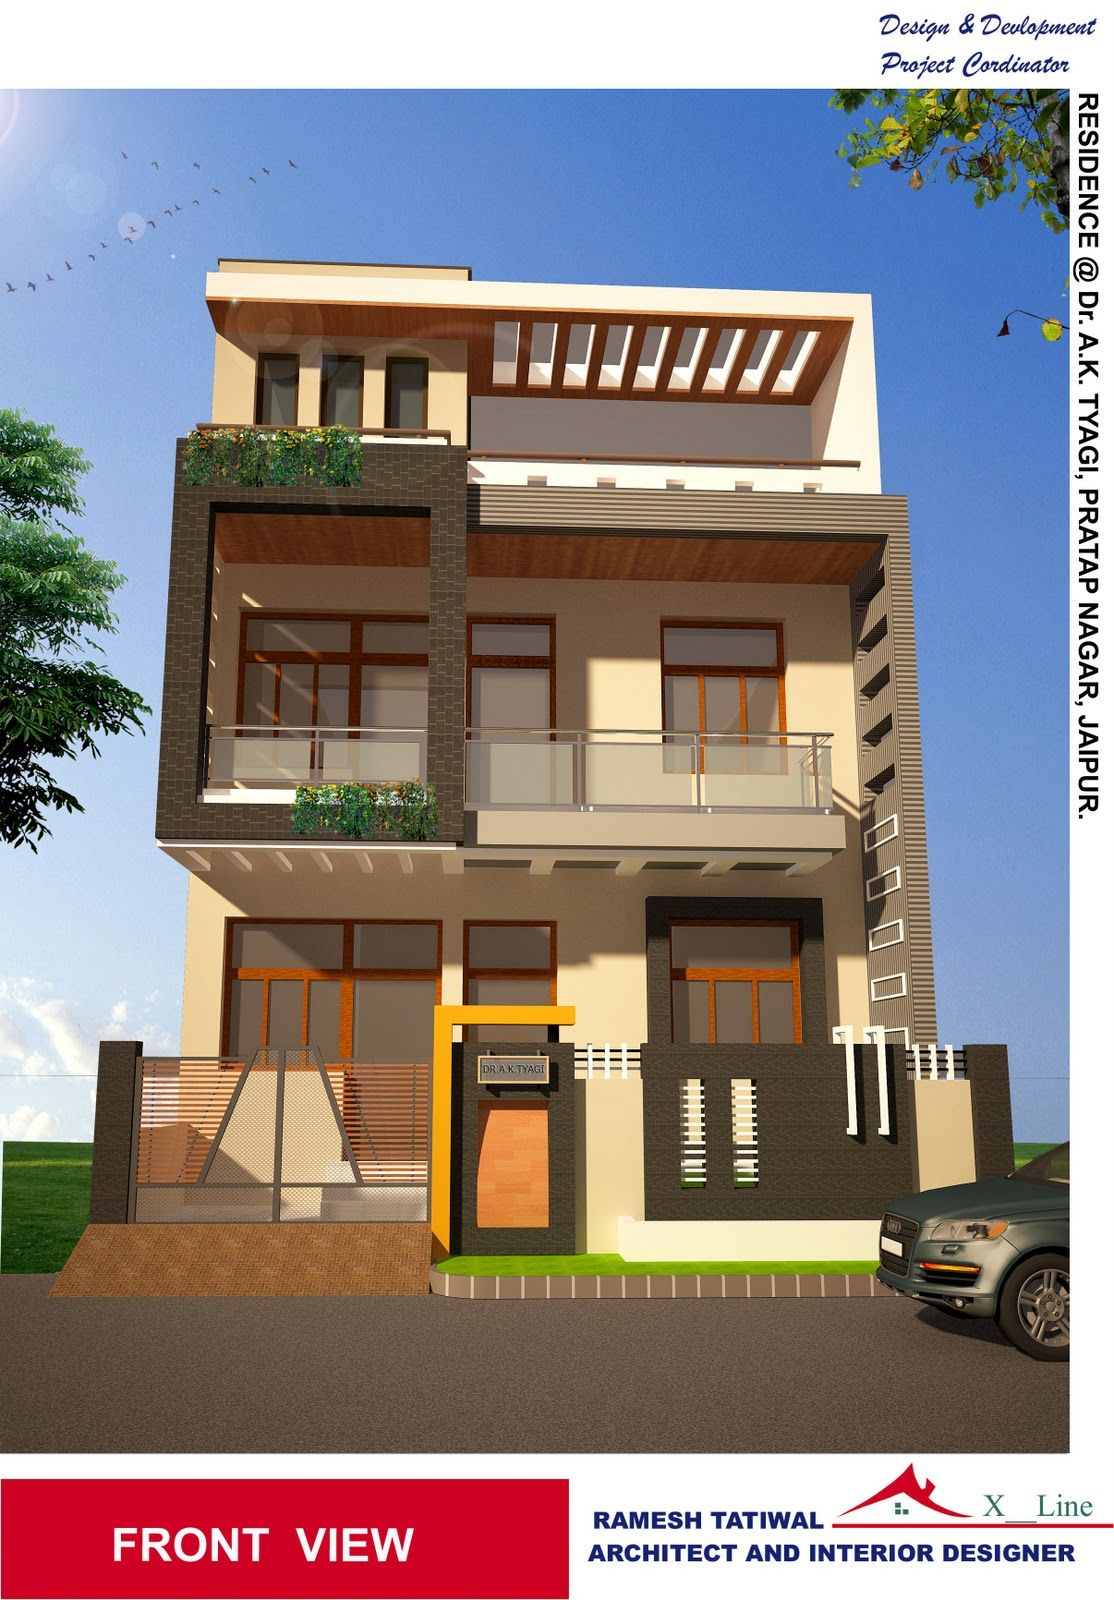 Housedesigns modern indian home architecture design from for House architecture